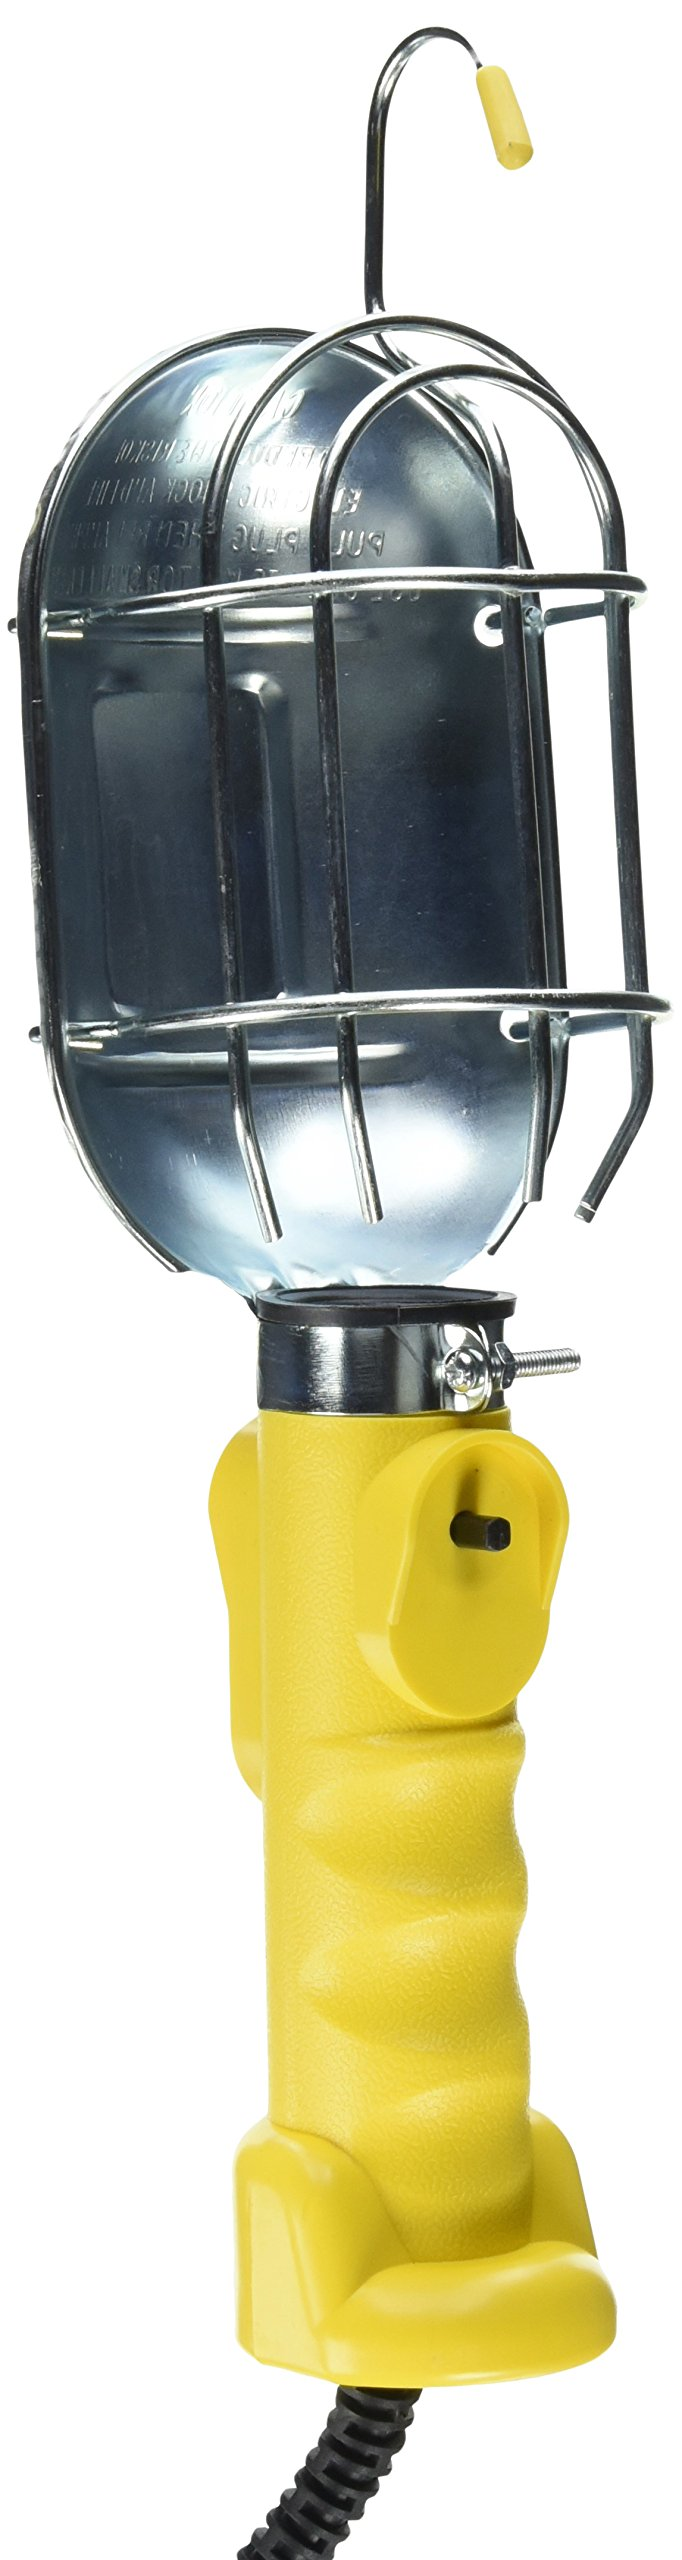 Bayco SL-425A Metal Shield Incandescent Utility Light with 16-Gauge Cord and Grounded Receptacle